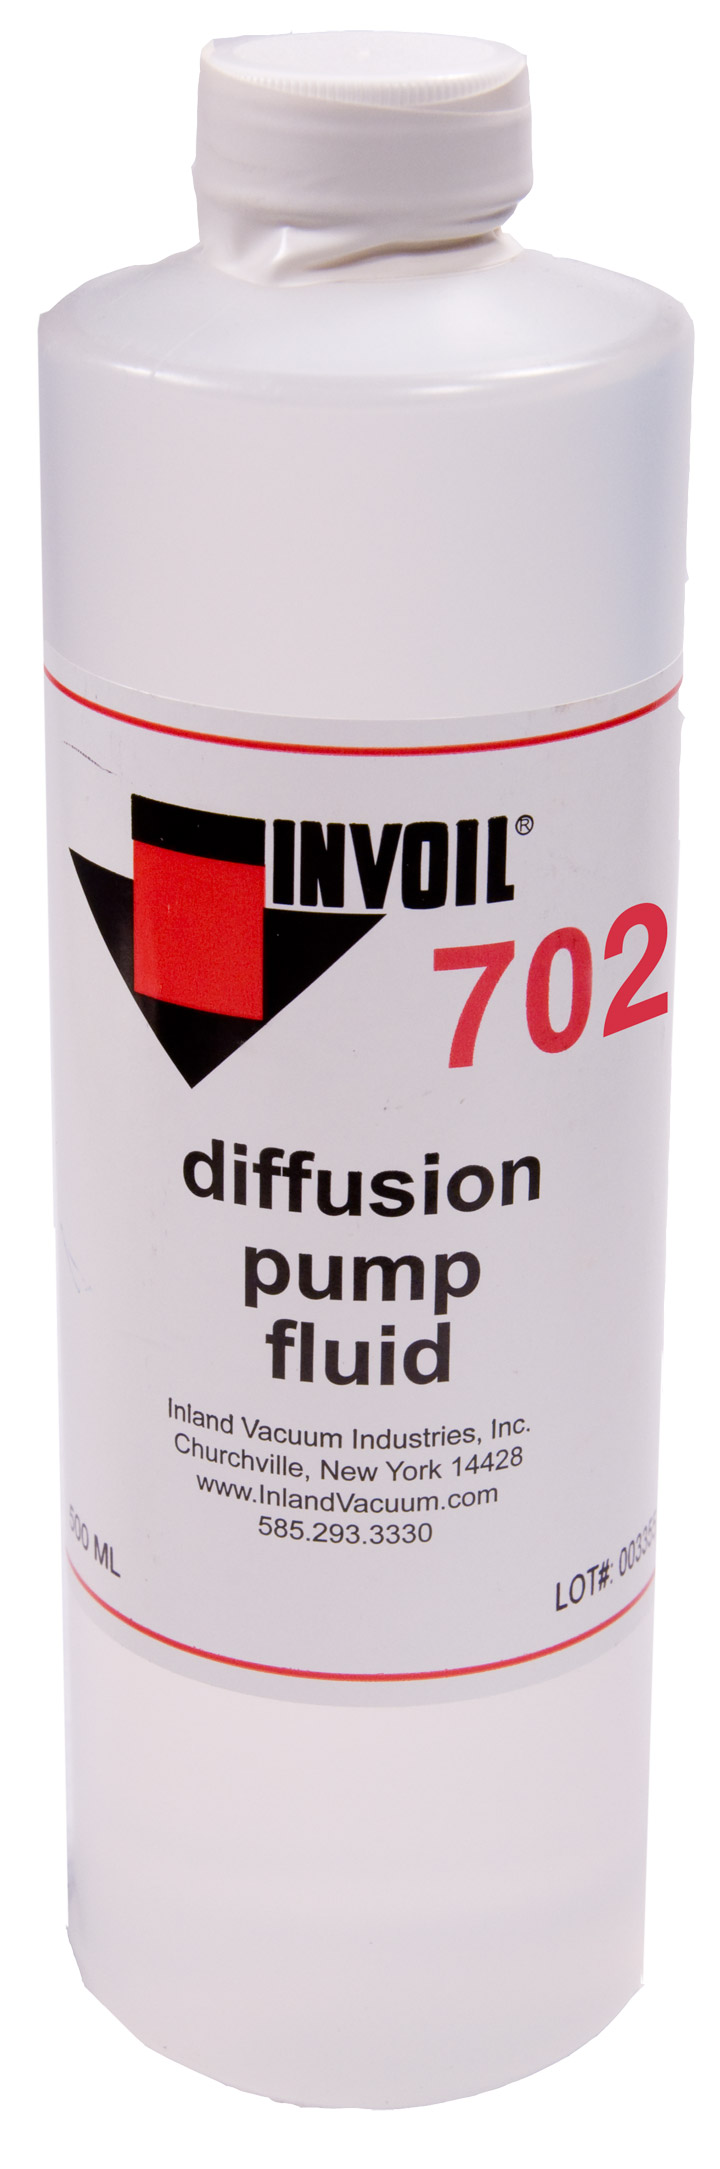 INVOIL® 702 Diffusion Pump Fluid